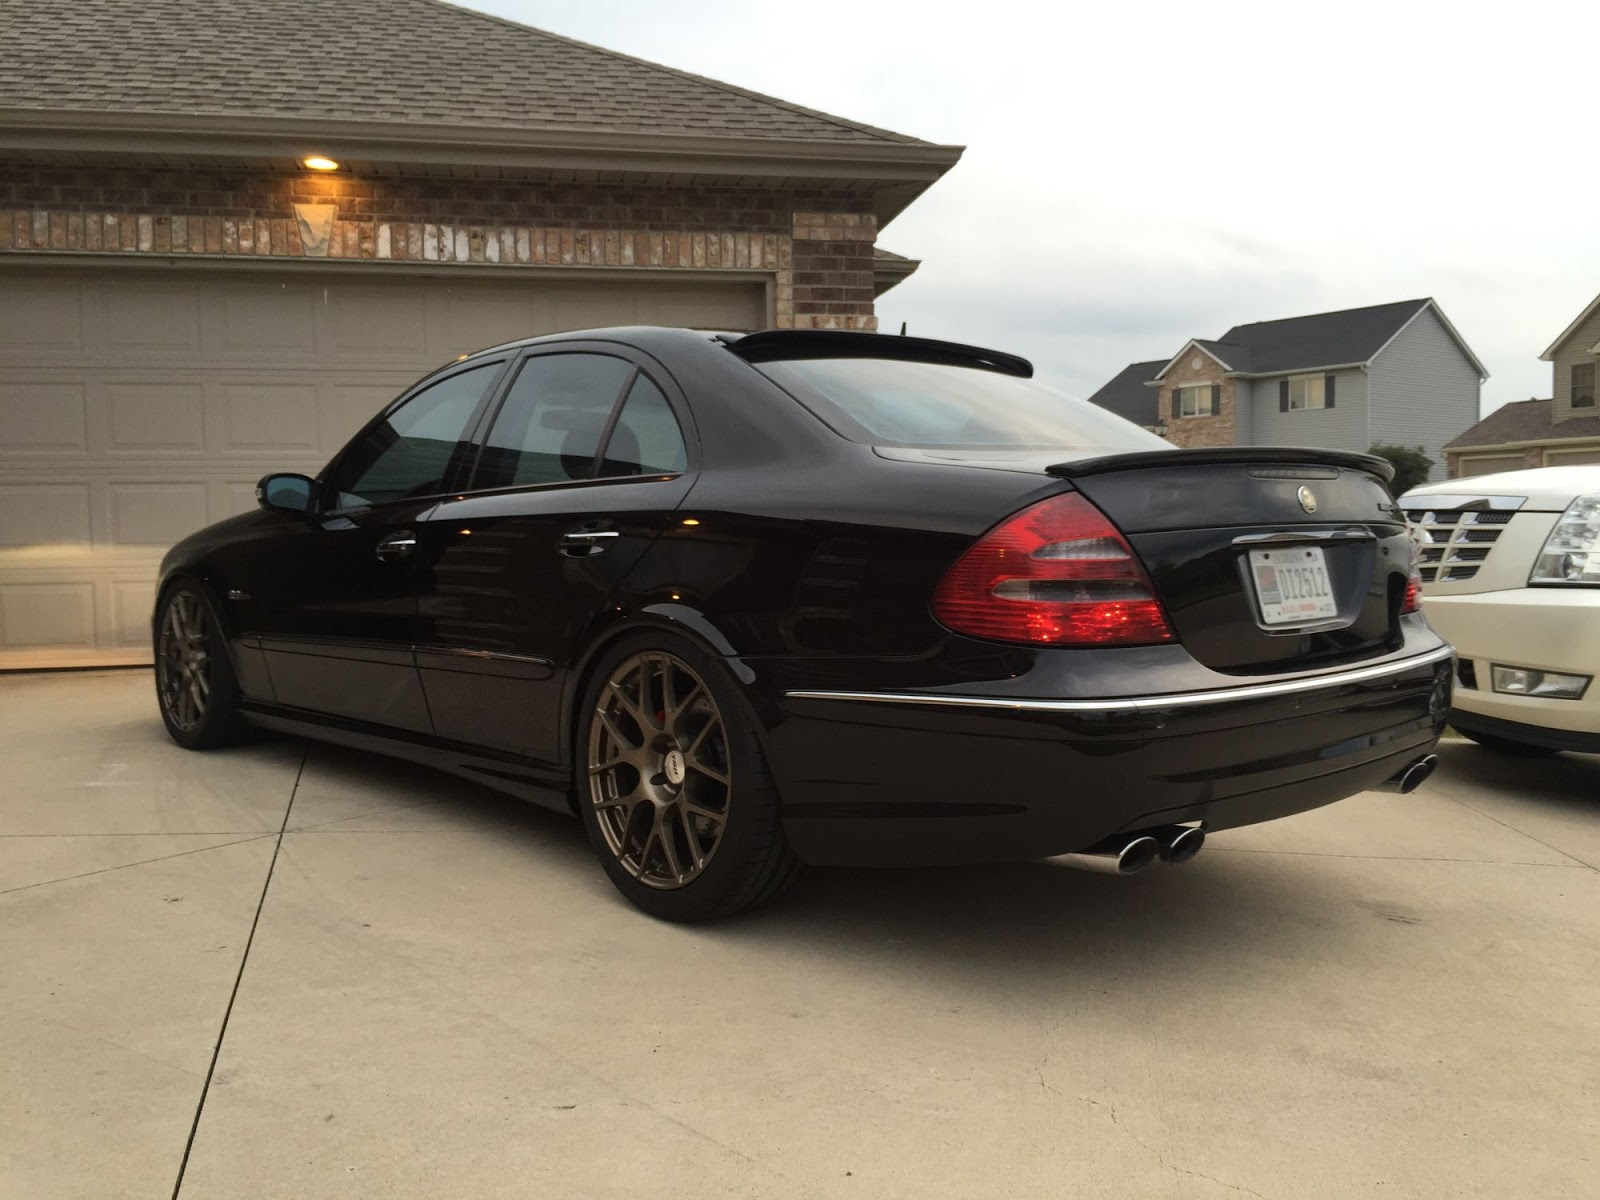 2005 mercedes benz w211 e55 amg on 19 tsw nurburgring benztuning. Black Bedroom Furniture Sets. Home Design Ideas